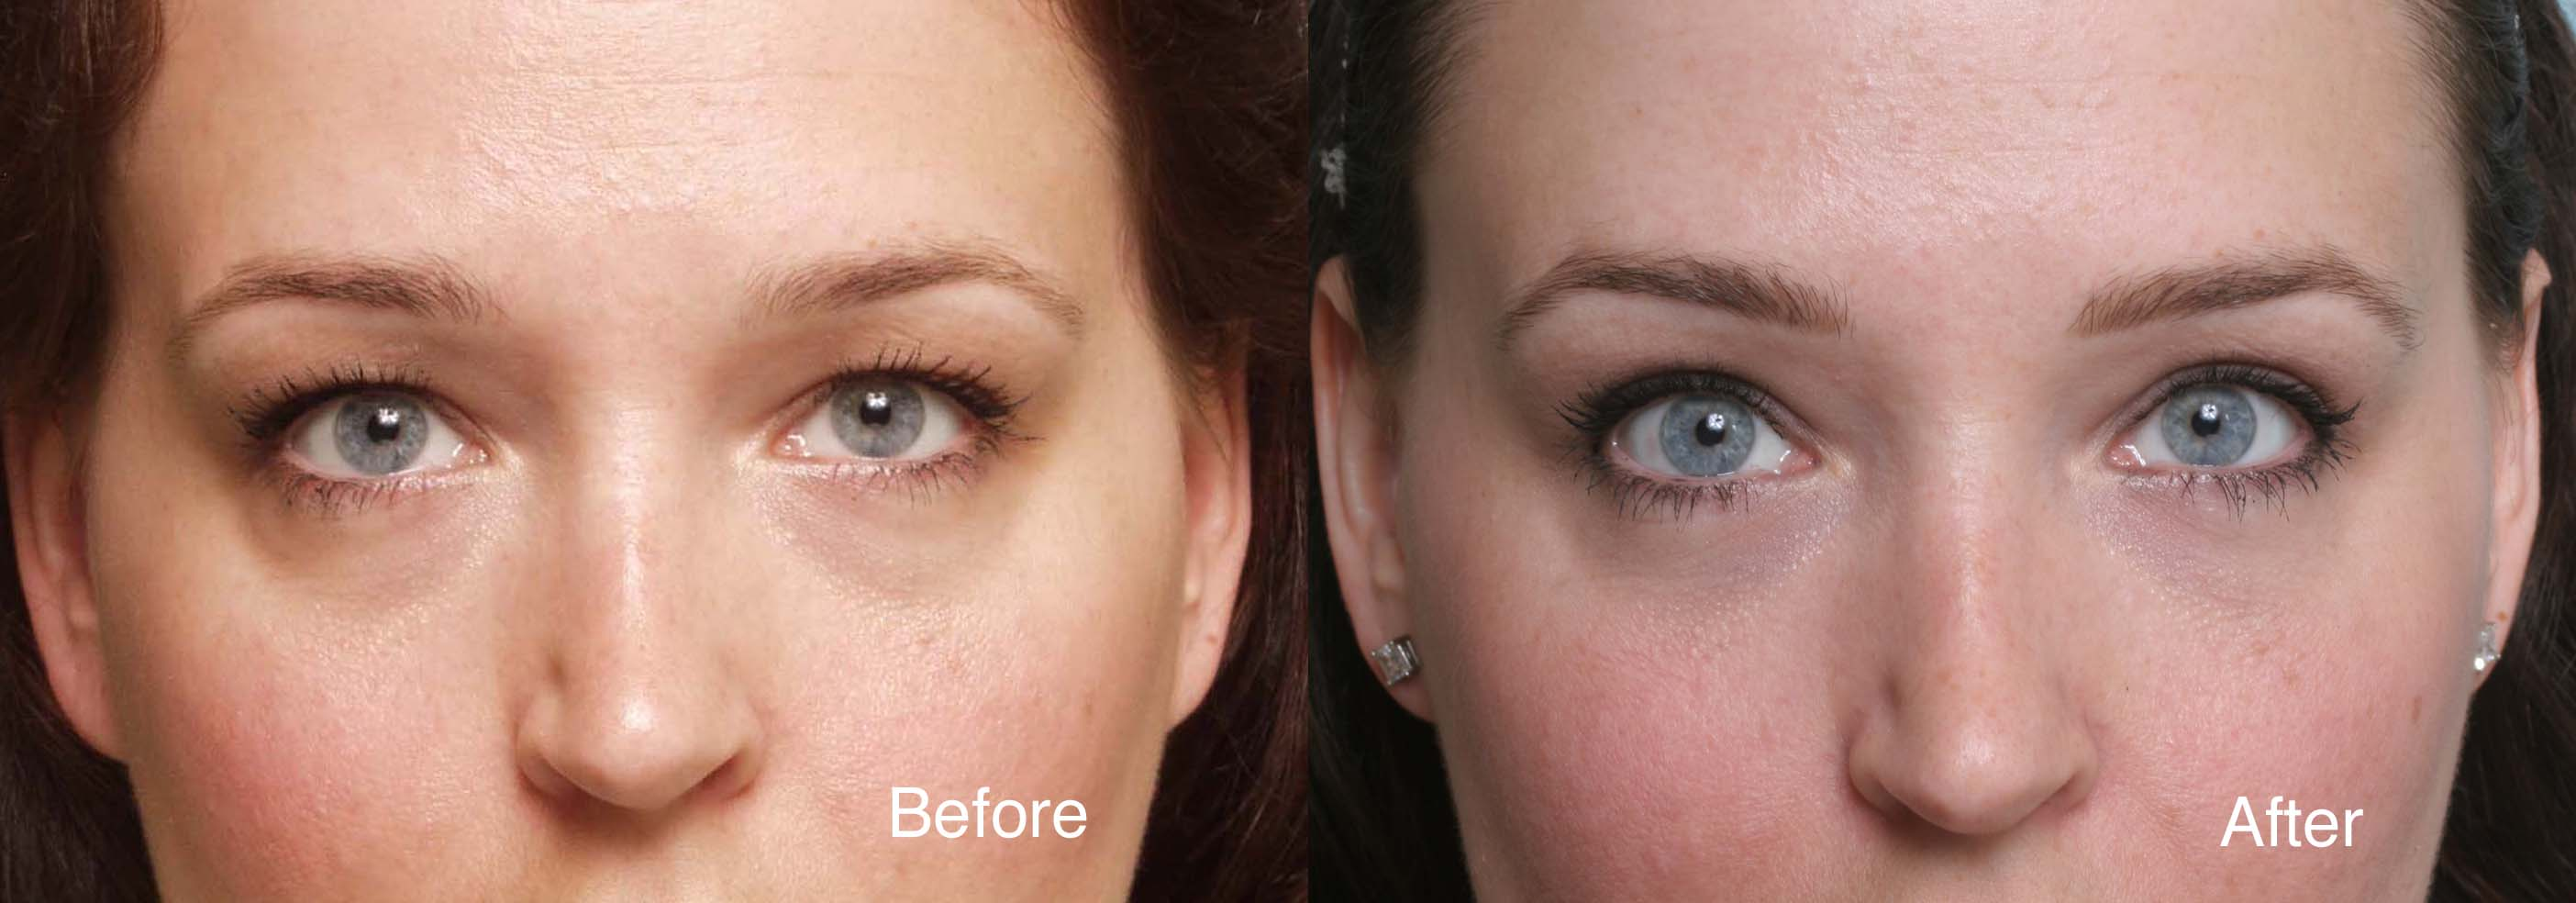 eye plastic surgery pictures 1